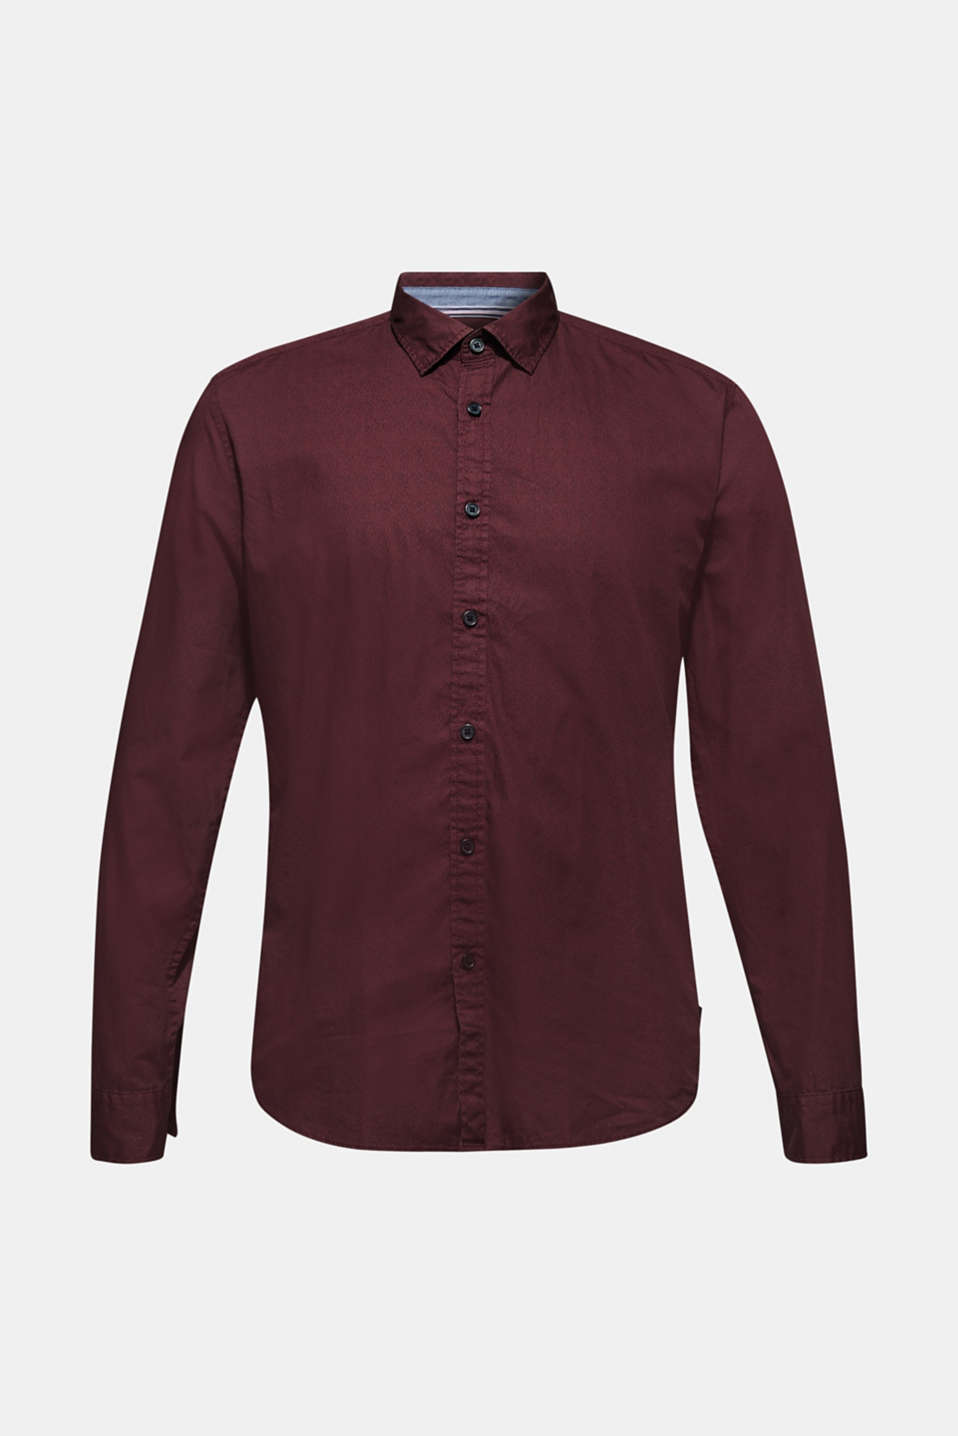 Shirt with micro print, 100% cotton, GARNET RED, detail image number 6